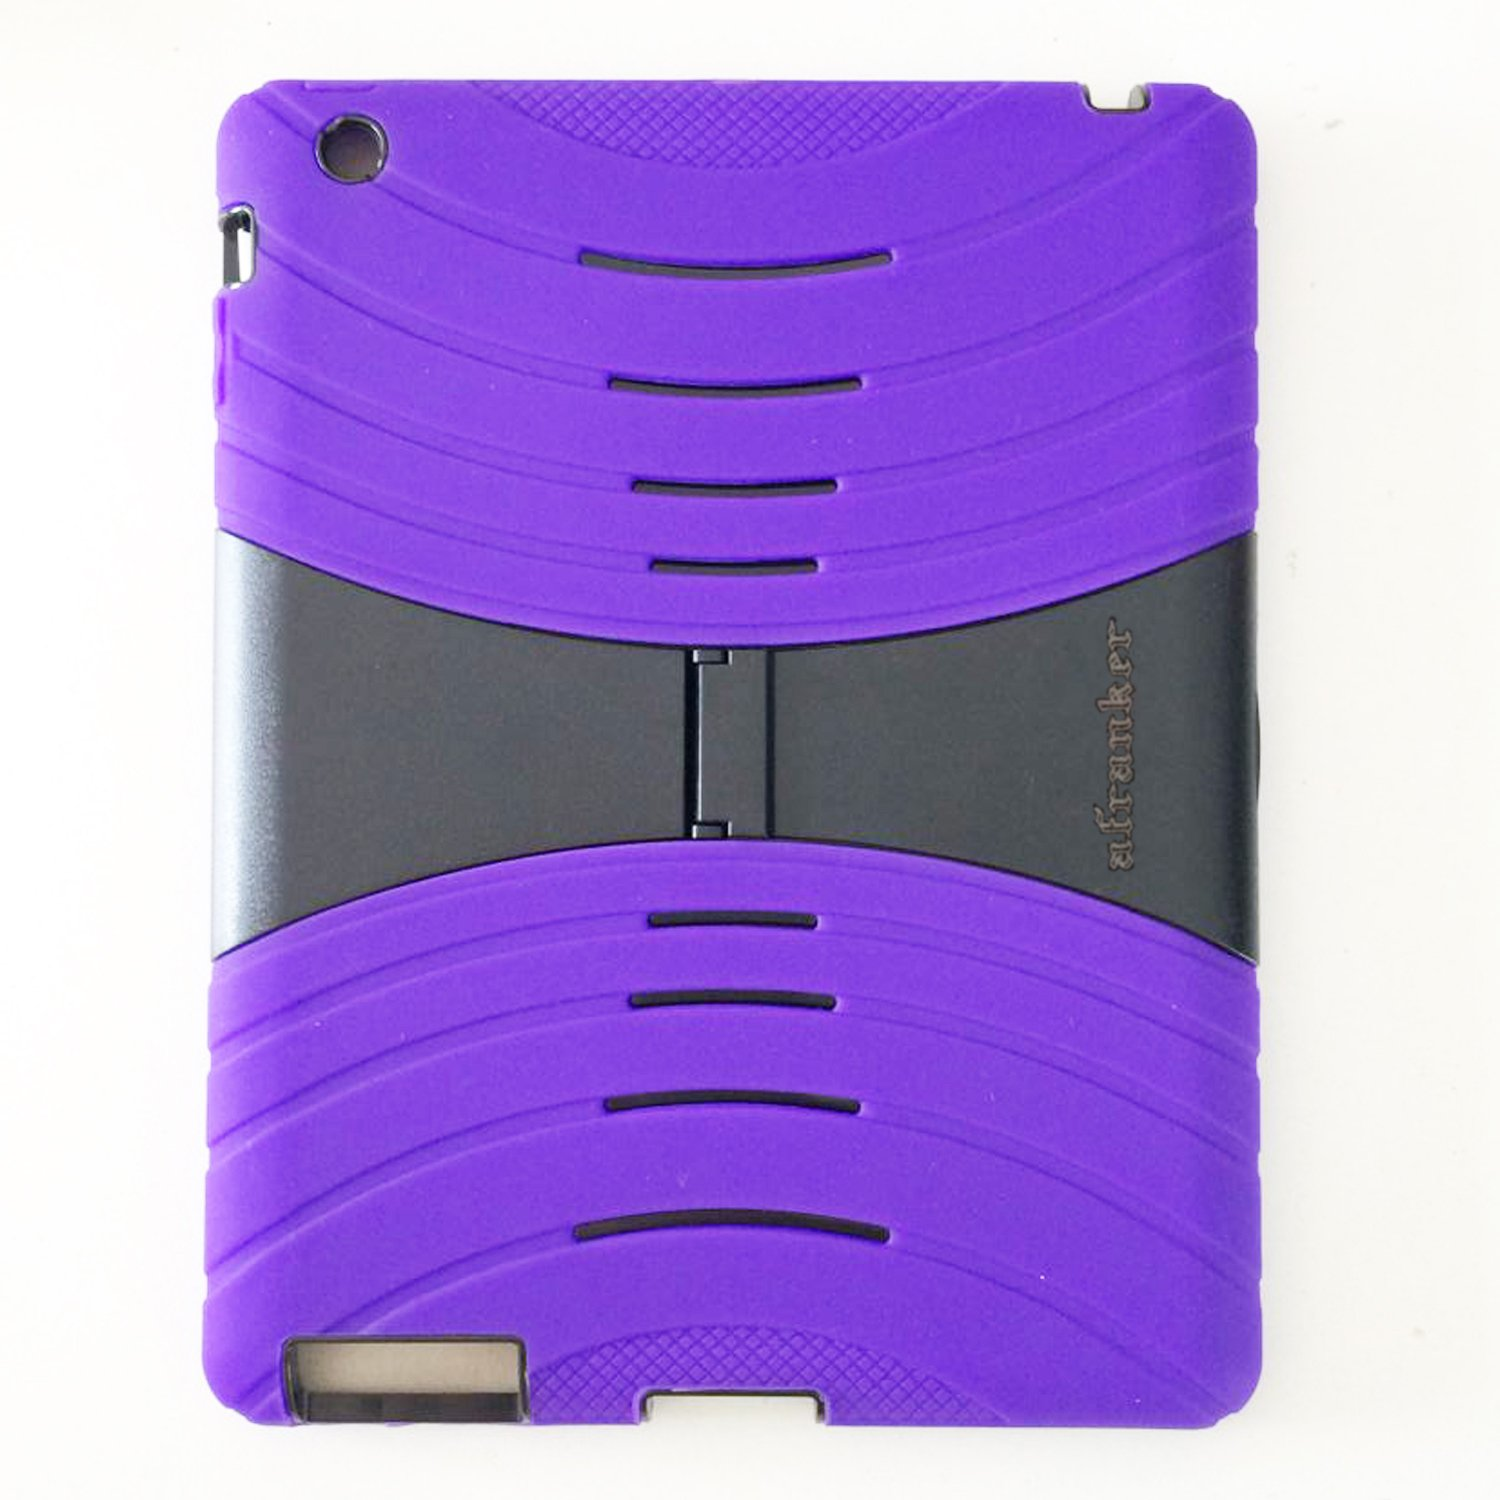 Afranker Ipad 2 / Ipad 3 / Ipad 4 Case Lightweight Shockproof Drop Resistance Rugged Silicone + Plastic 2 Layer Hybrid Defender Super Protection Case and Built-in Kickstand Purple RV Designer Collection S535